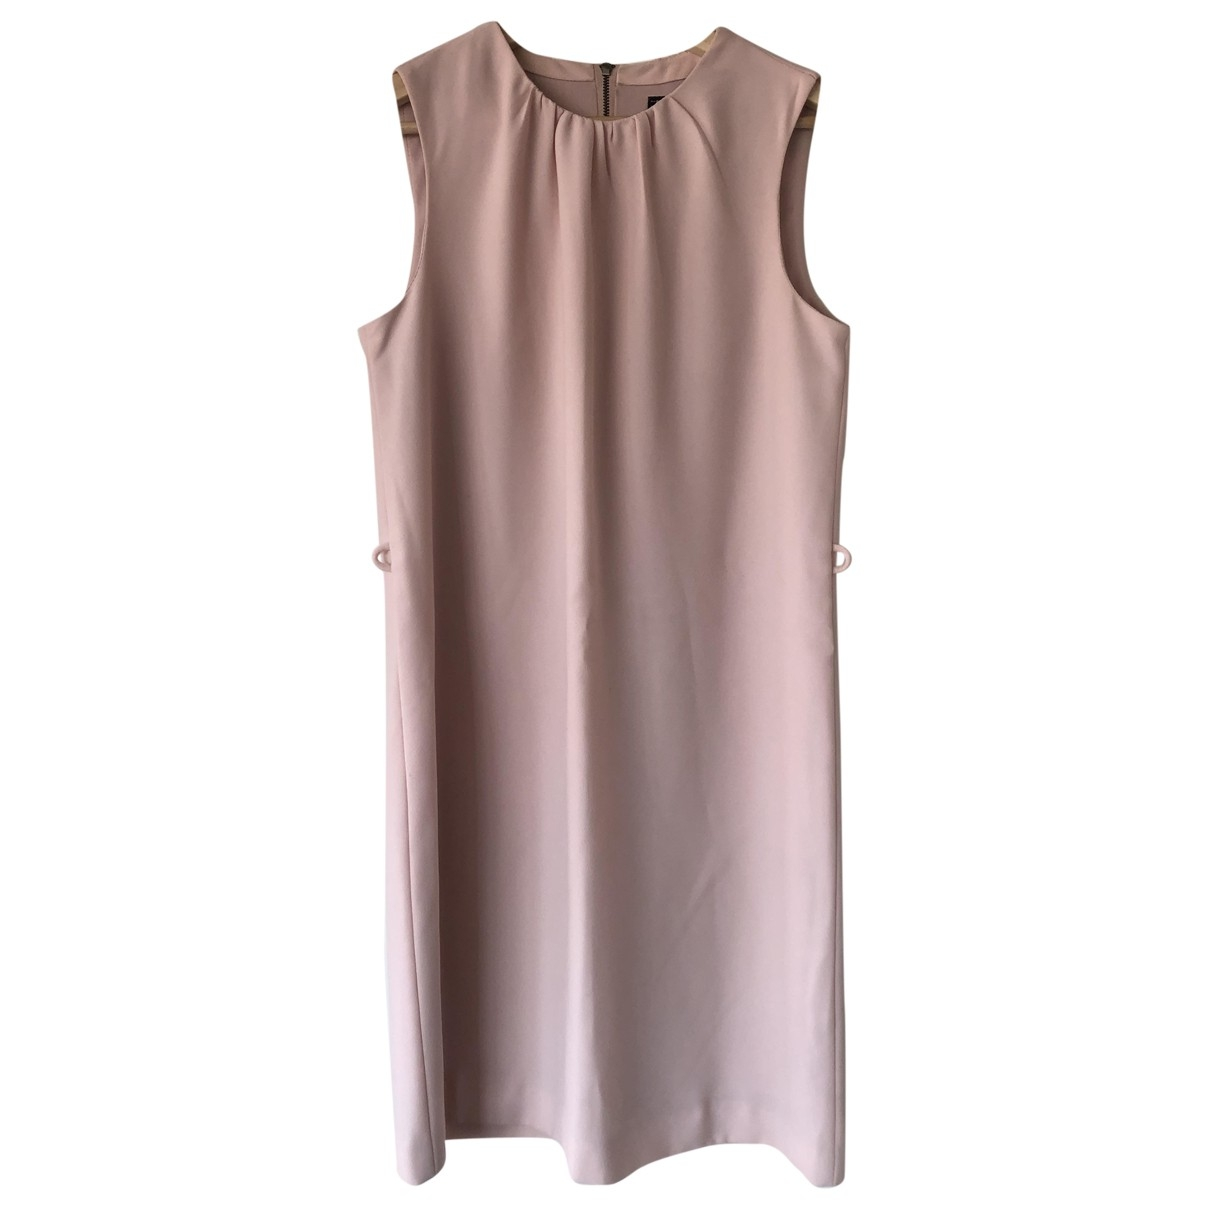 Zara \N Pink dress for Women M International